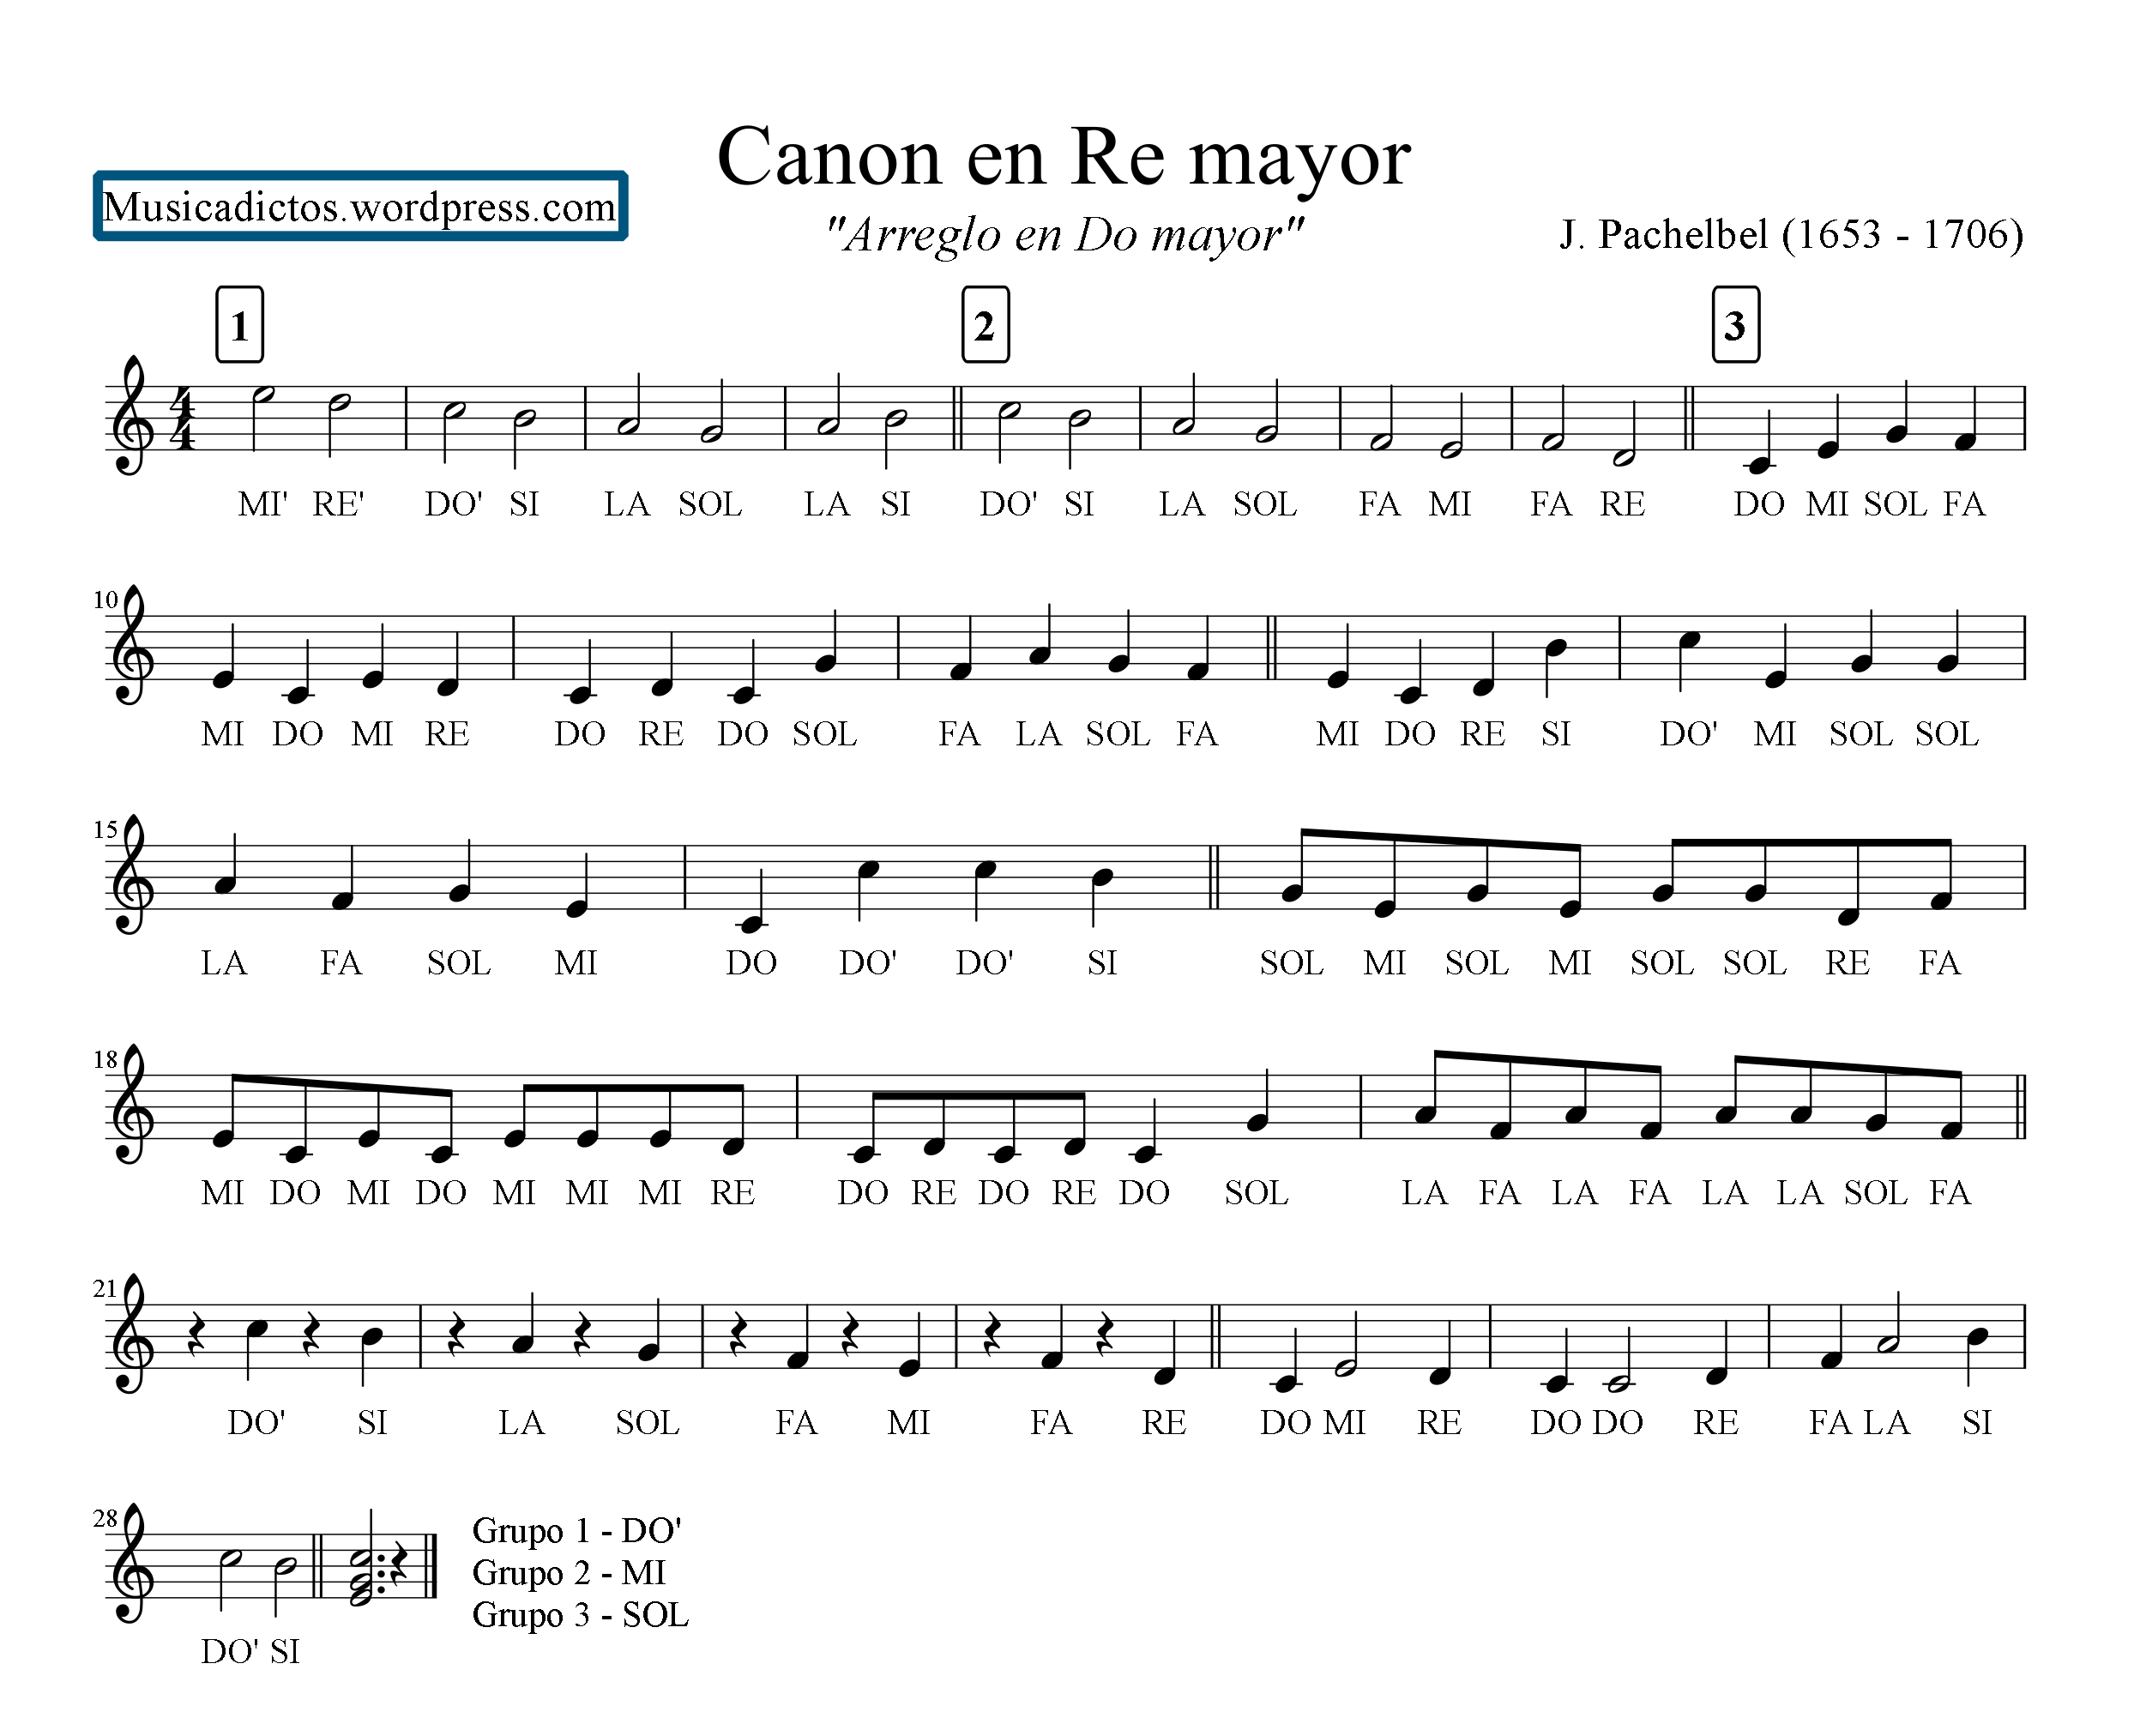 https://musicadictos.files.wordpress.com/2012/01/pachelbel-canon-en-re-dance.png